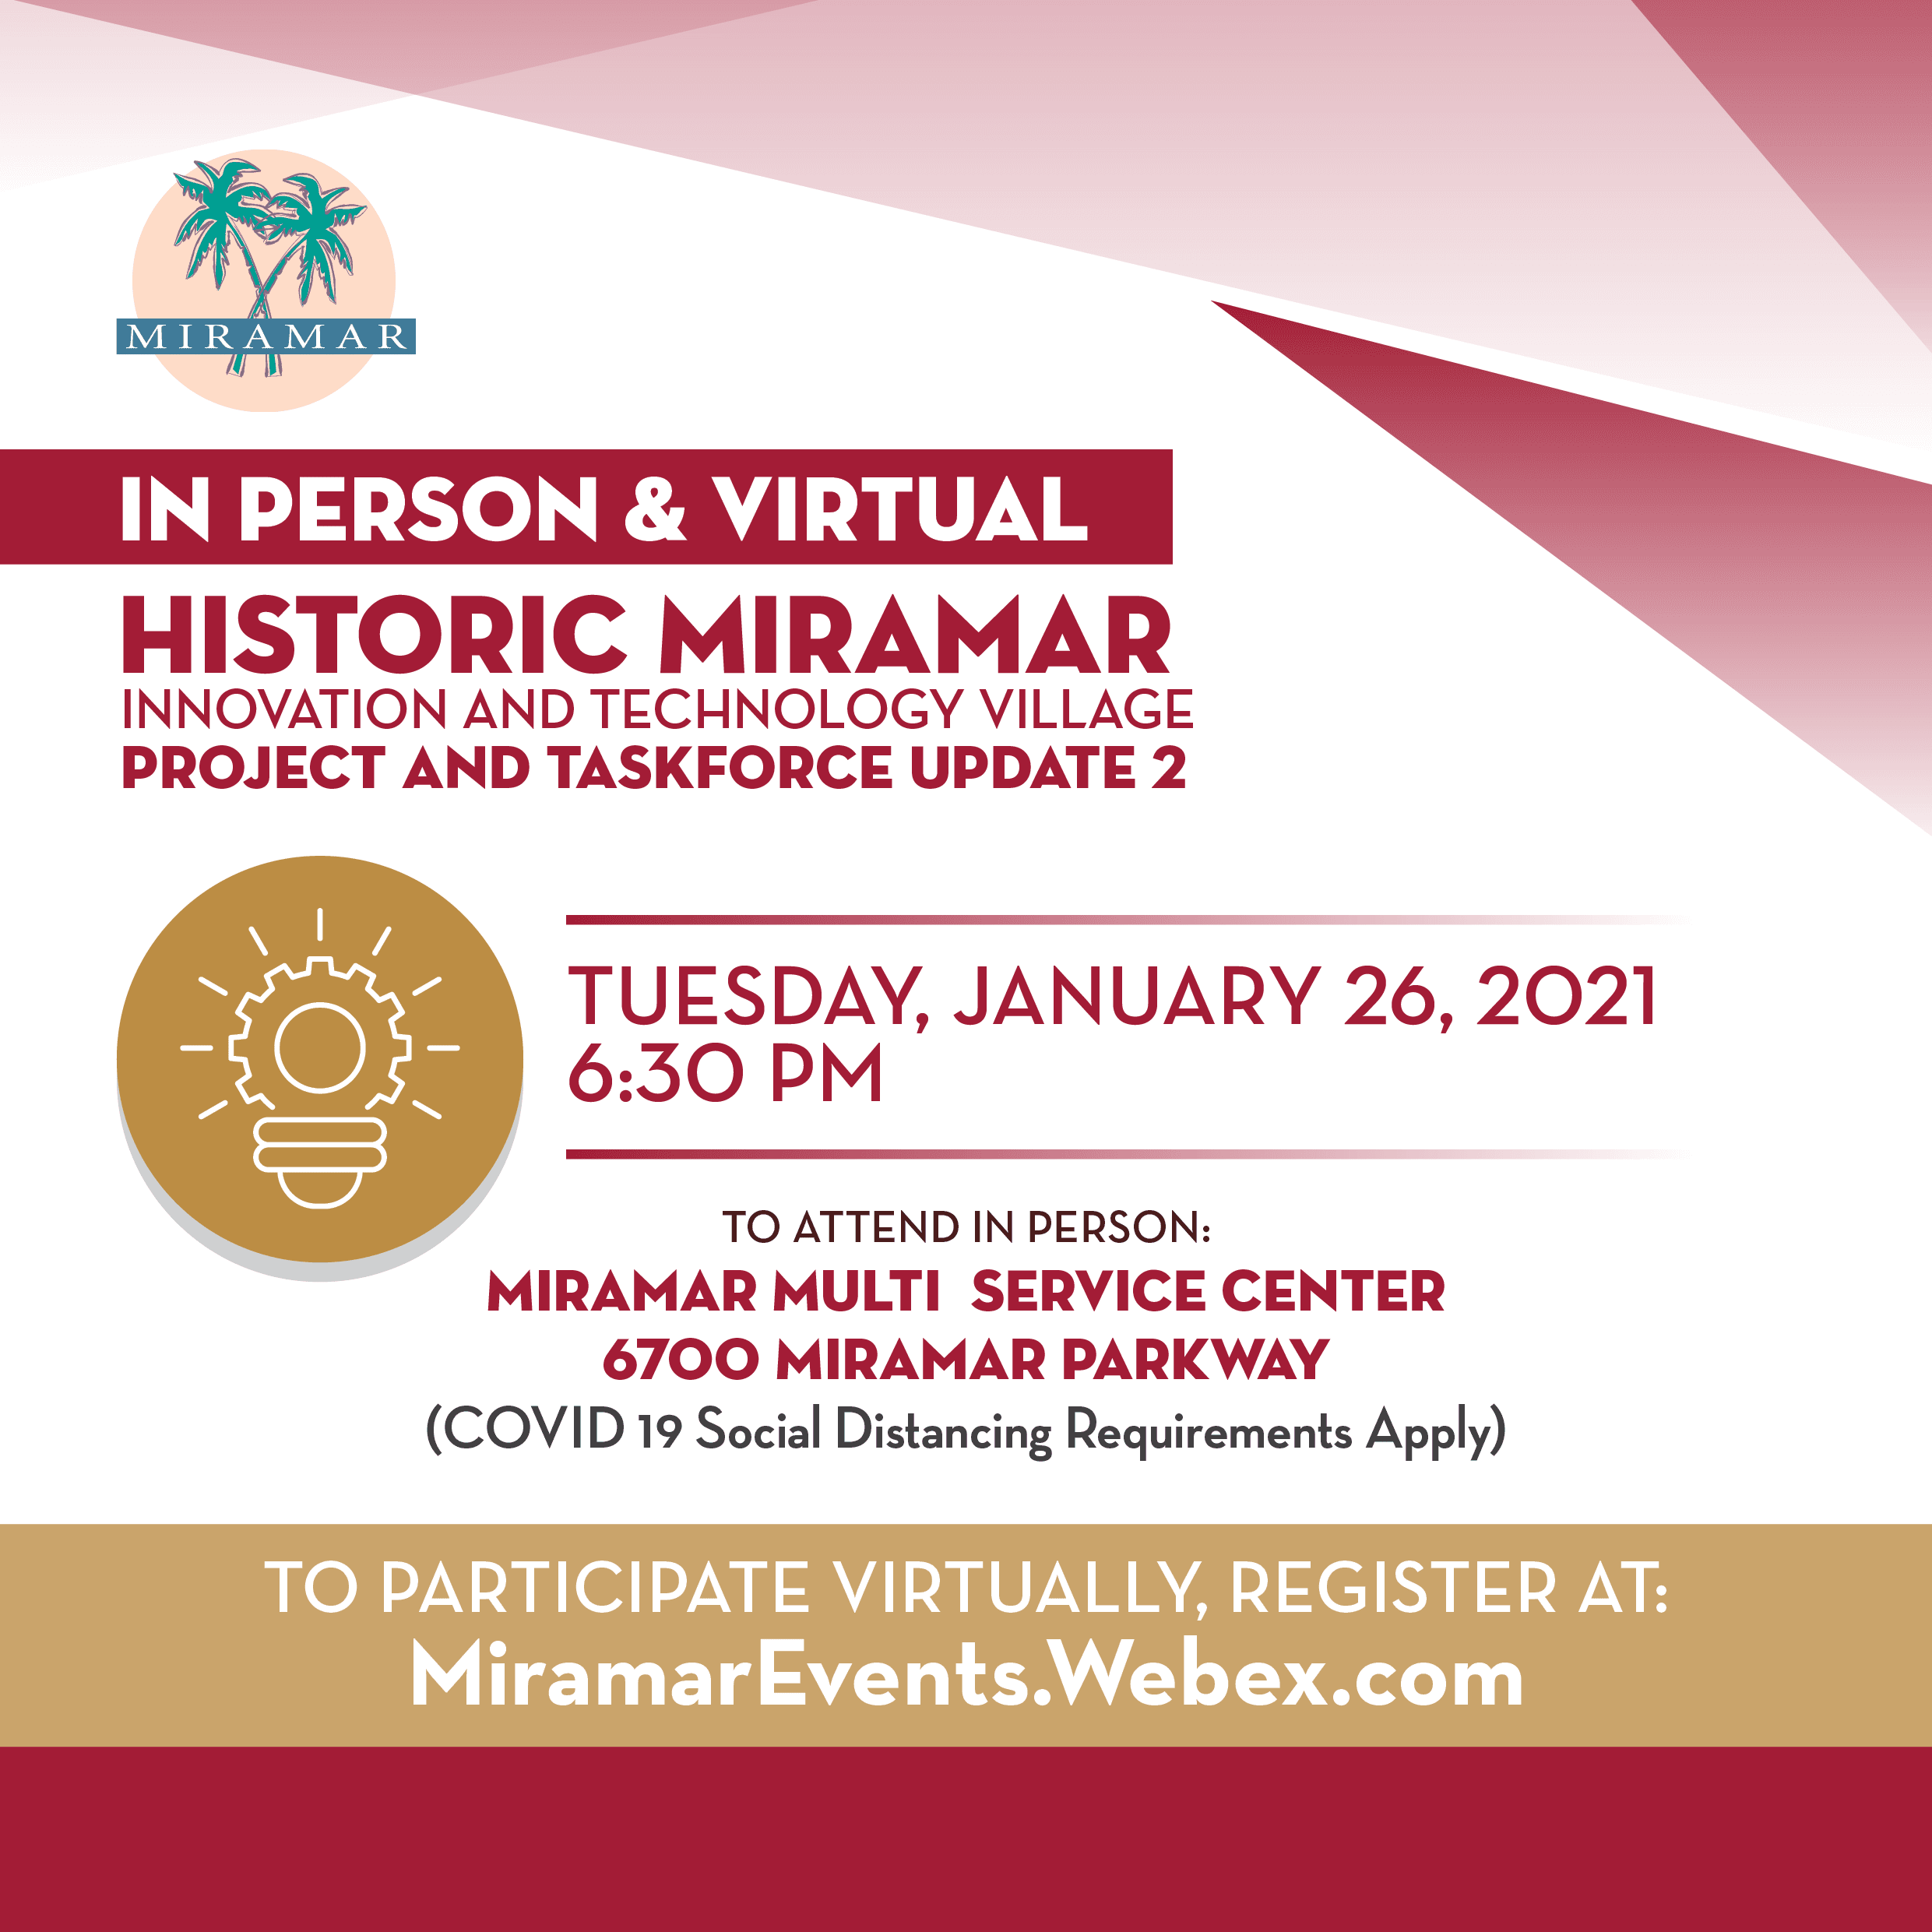 Historic Miramar Innovation and Technology Village Meeting January 26 - News